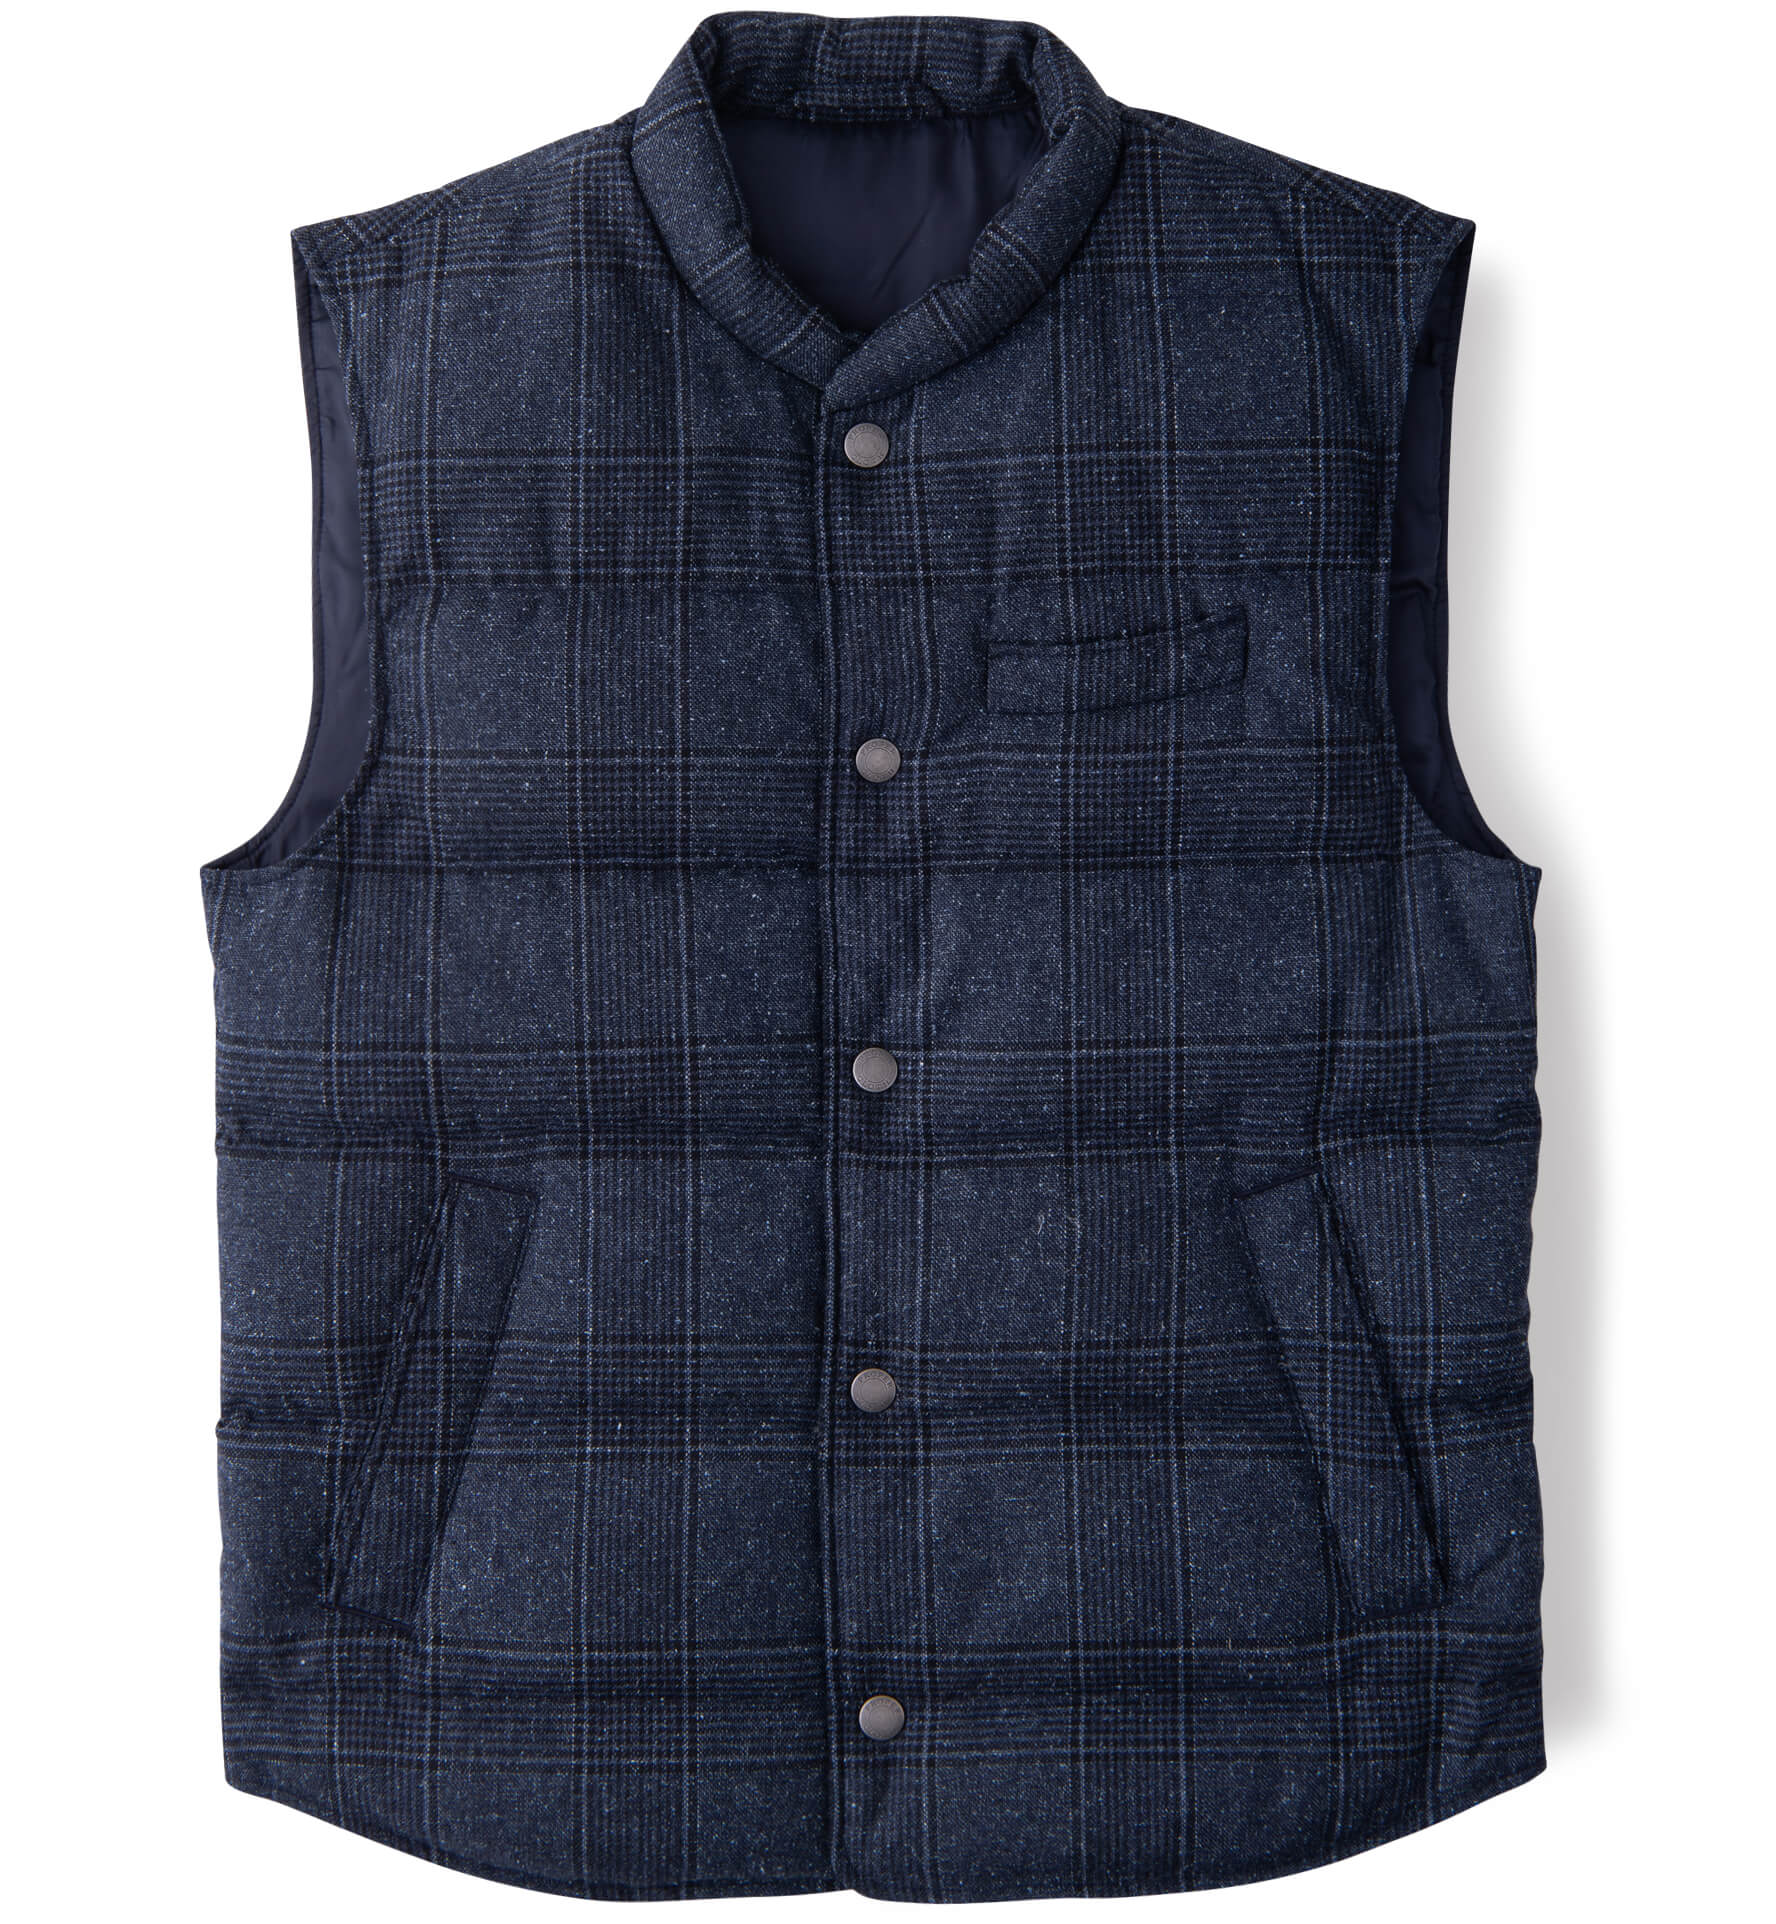 Zoom Image of Cortina Navy Plaid Donegal Wool Snap Vest